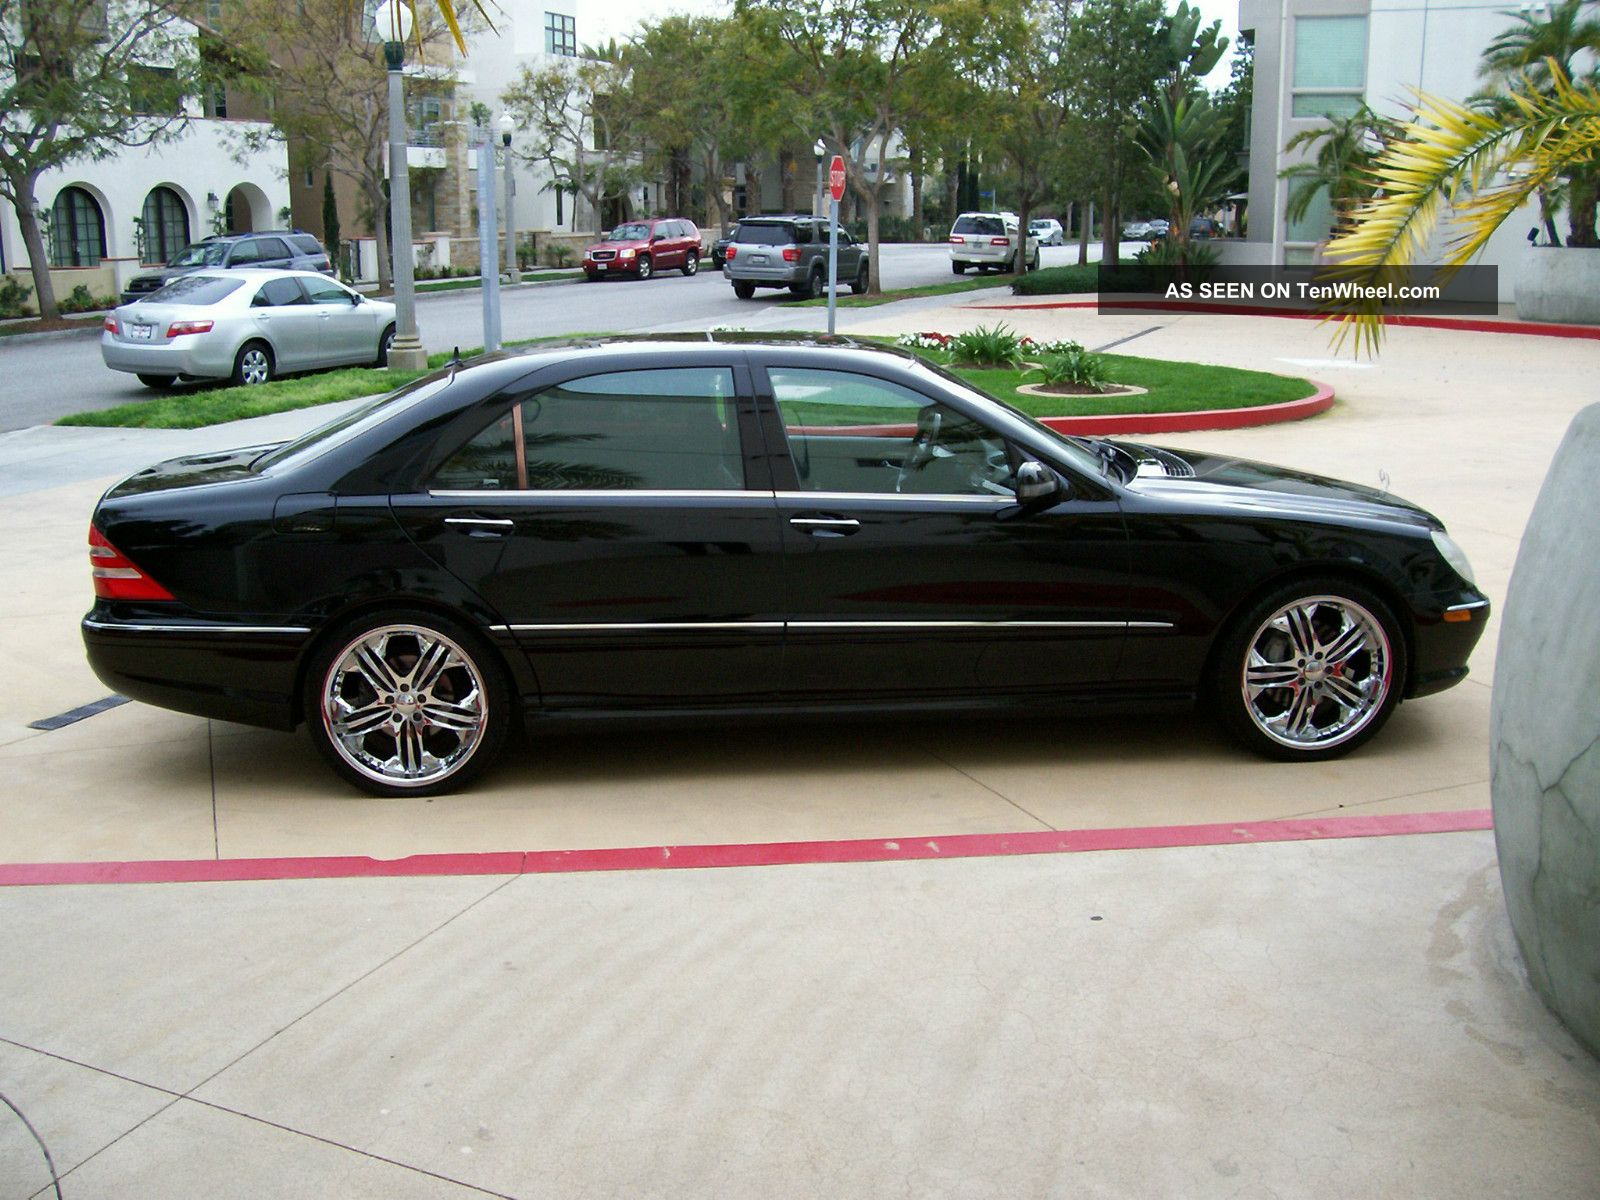 2002 mercedes benz s500 base sedan 4 door 5 0l loaded. Black Bedroom Furniture Sets. Home Design Ideas